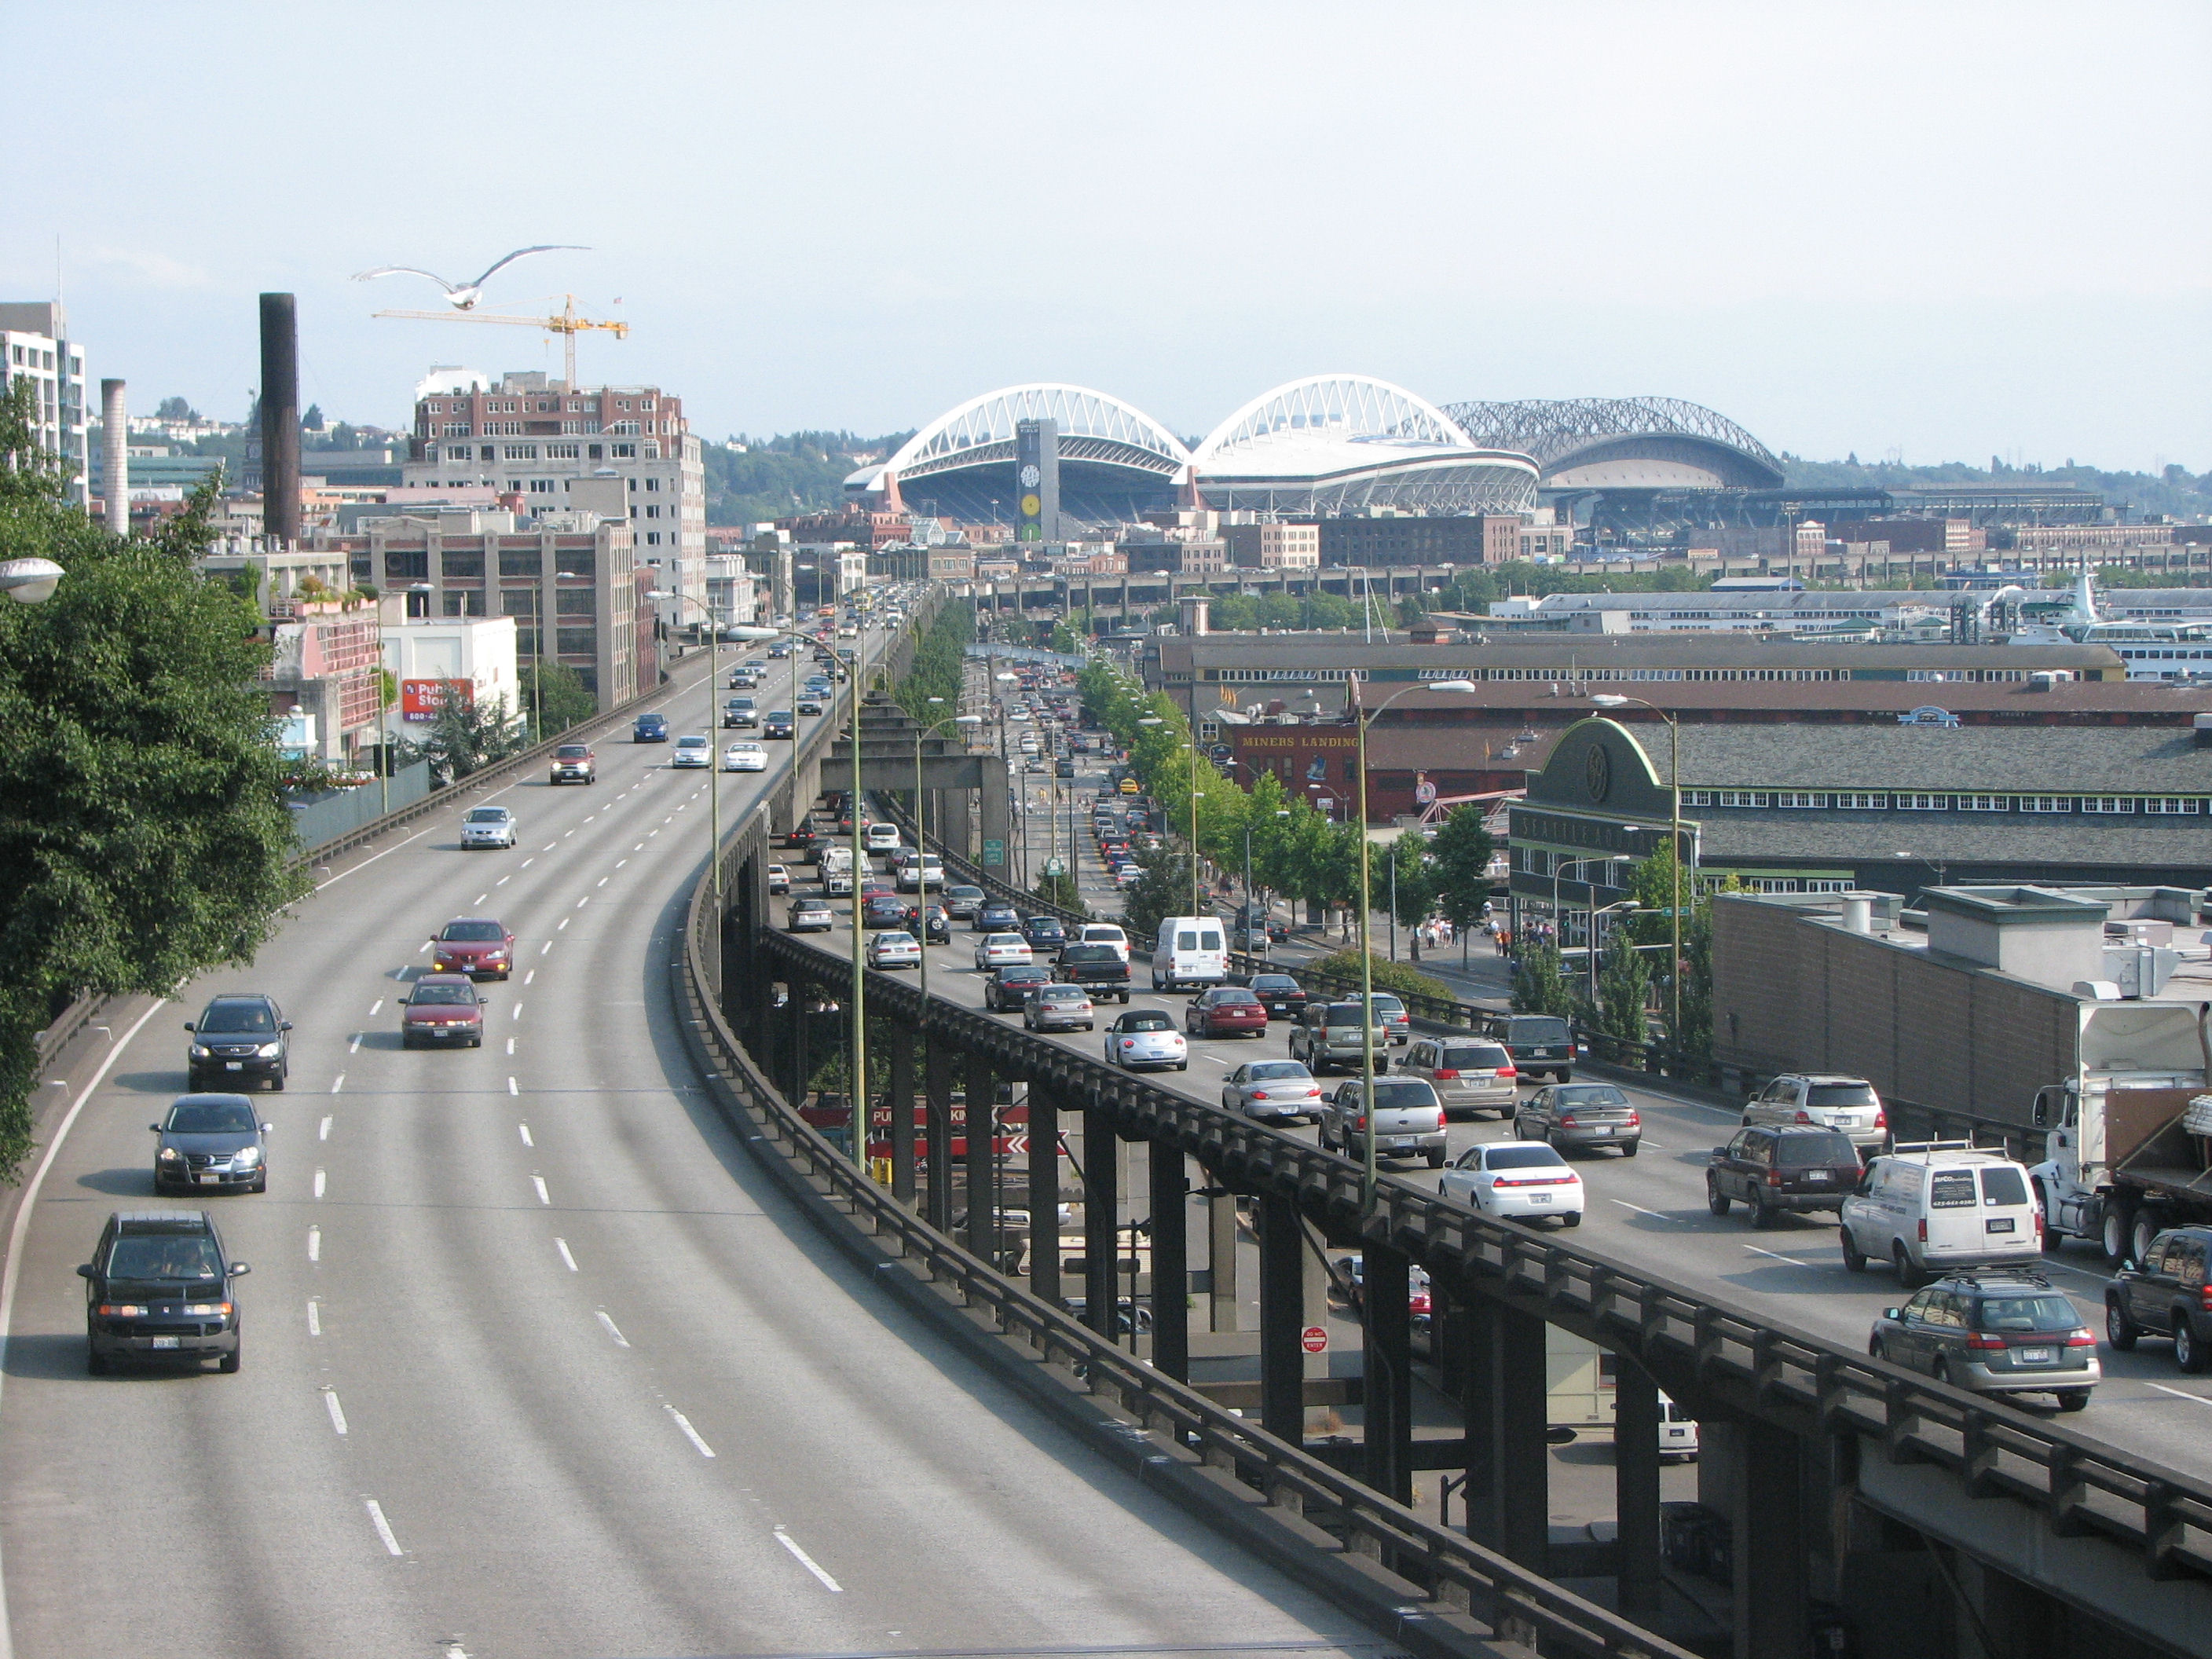 The Alaskan Way Viaduct, damaged decades ago, will be rebuilt as a double-decker highway, even though a transit-heavy alternative would have been at least as effective at reducing congestion. Photo: Rootology/##http://en.wikipedia.org/wiki/Alaskan_Way_Viaduct#mediaviewer/File:The_Alaskan_Way_Viaduct.jpg##Wikimedia##